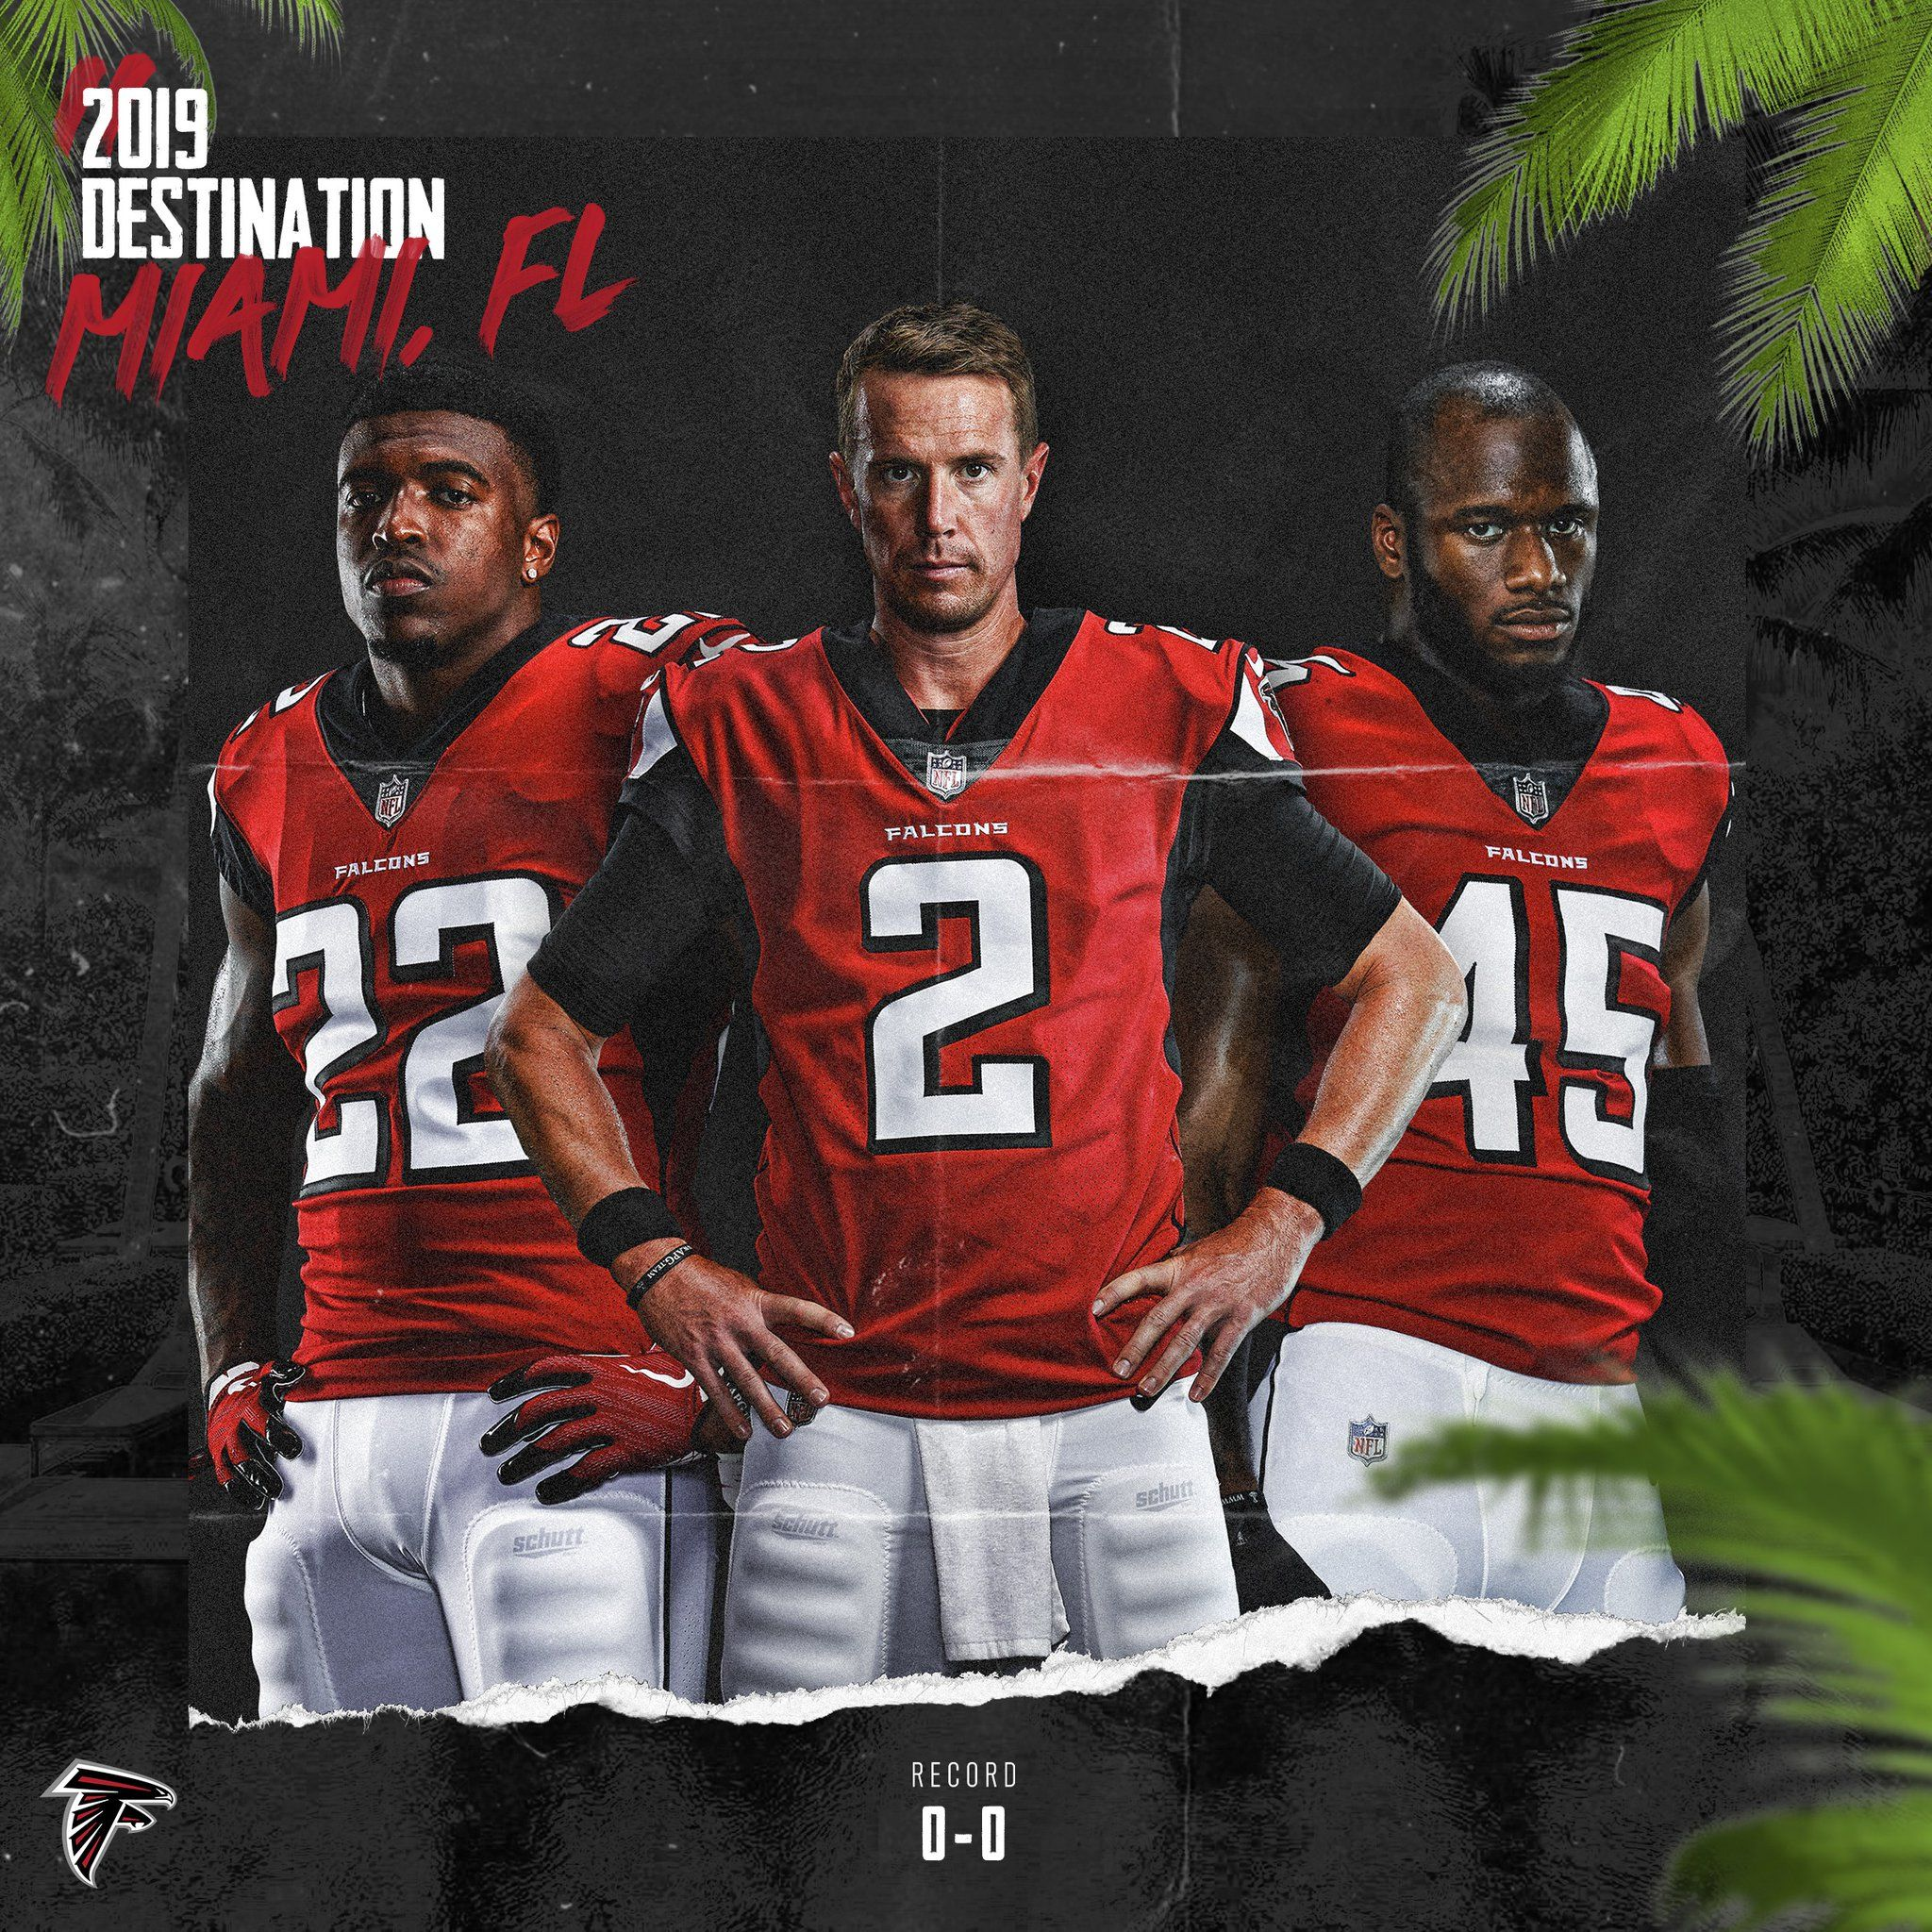 Atlanta Falcons On Atlanta Falcons Atlanta Atlanta Falcons Football